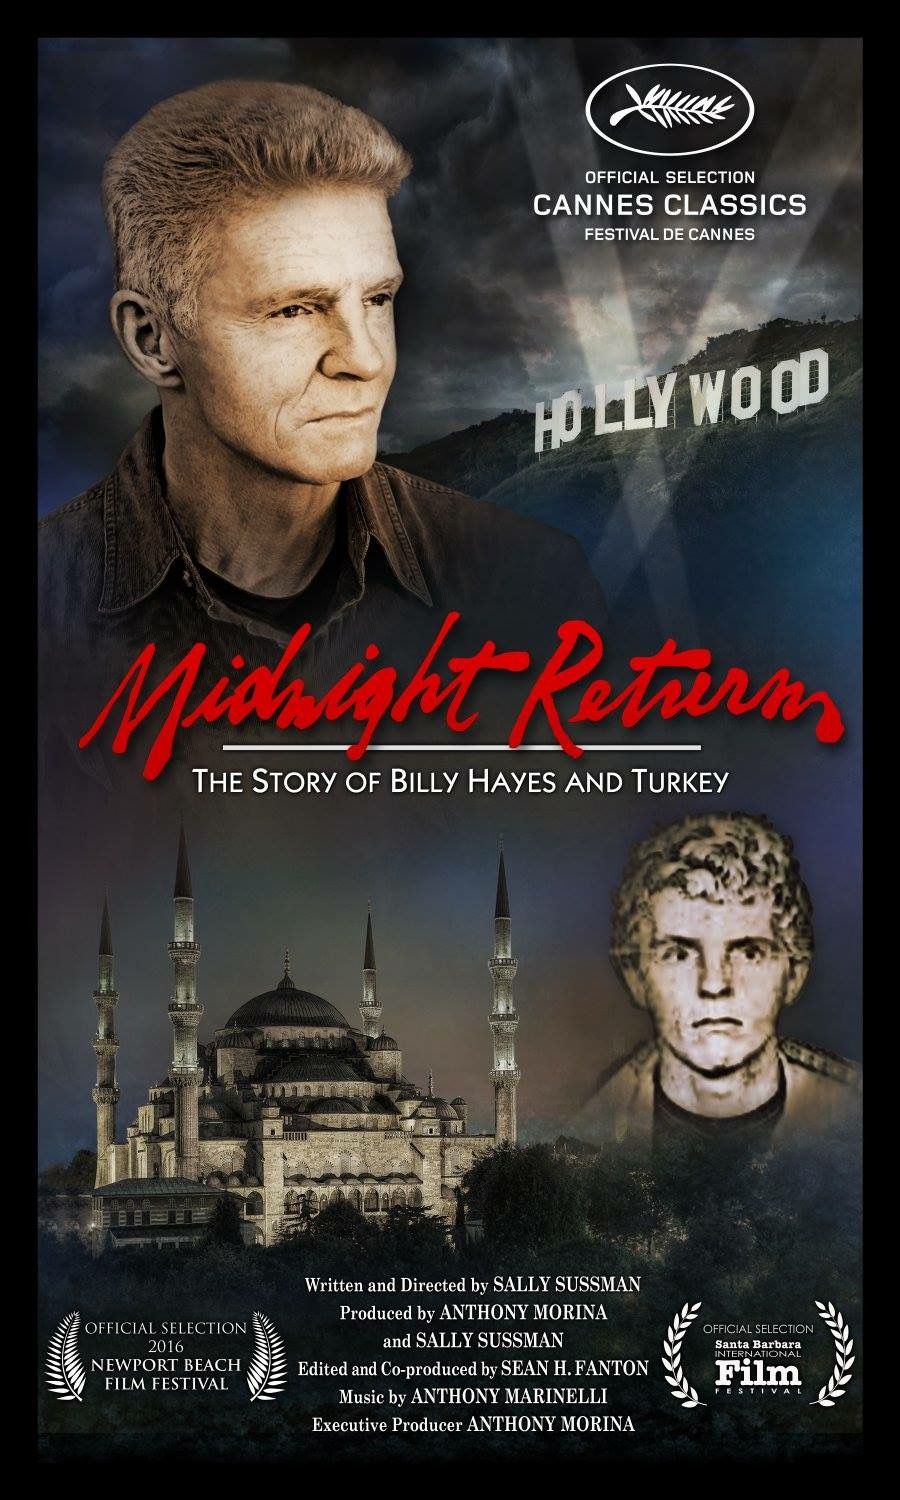 """Feature documentary entitled """"Midnight Return,"""" which we sound designed and mixed will have it's world premiere at the Cannes Film Festival in May. It was written and directed by Sally Sussman and edited by Sean Fanton. The doc explores the enduring and emotional power of film as seen through the lens of the blockbuster success, """"Midnight Express."""" It stars Billy Hayes as himself."""